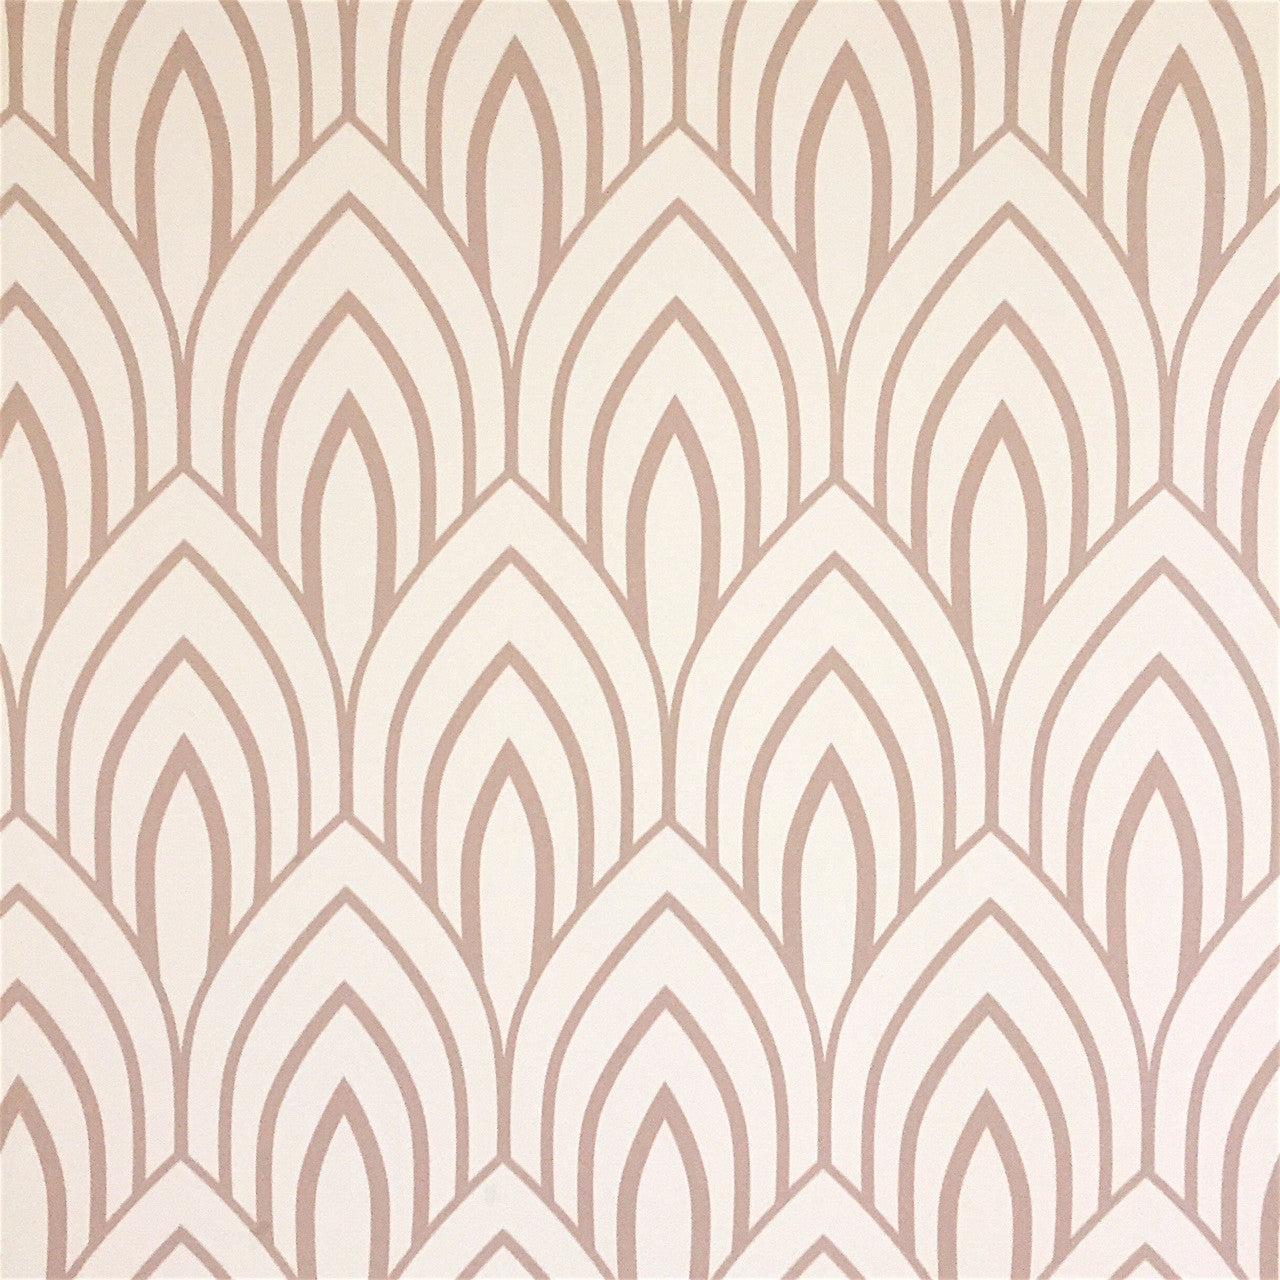 Beige Arches Wallpaper